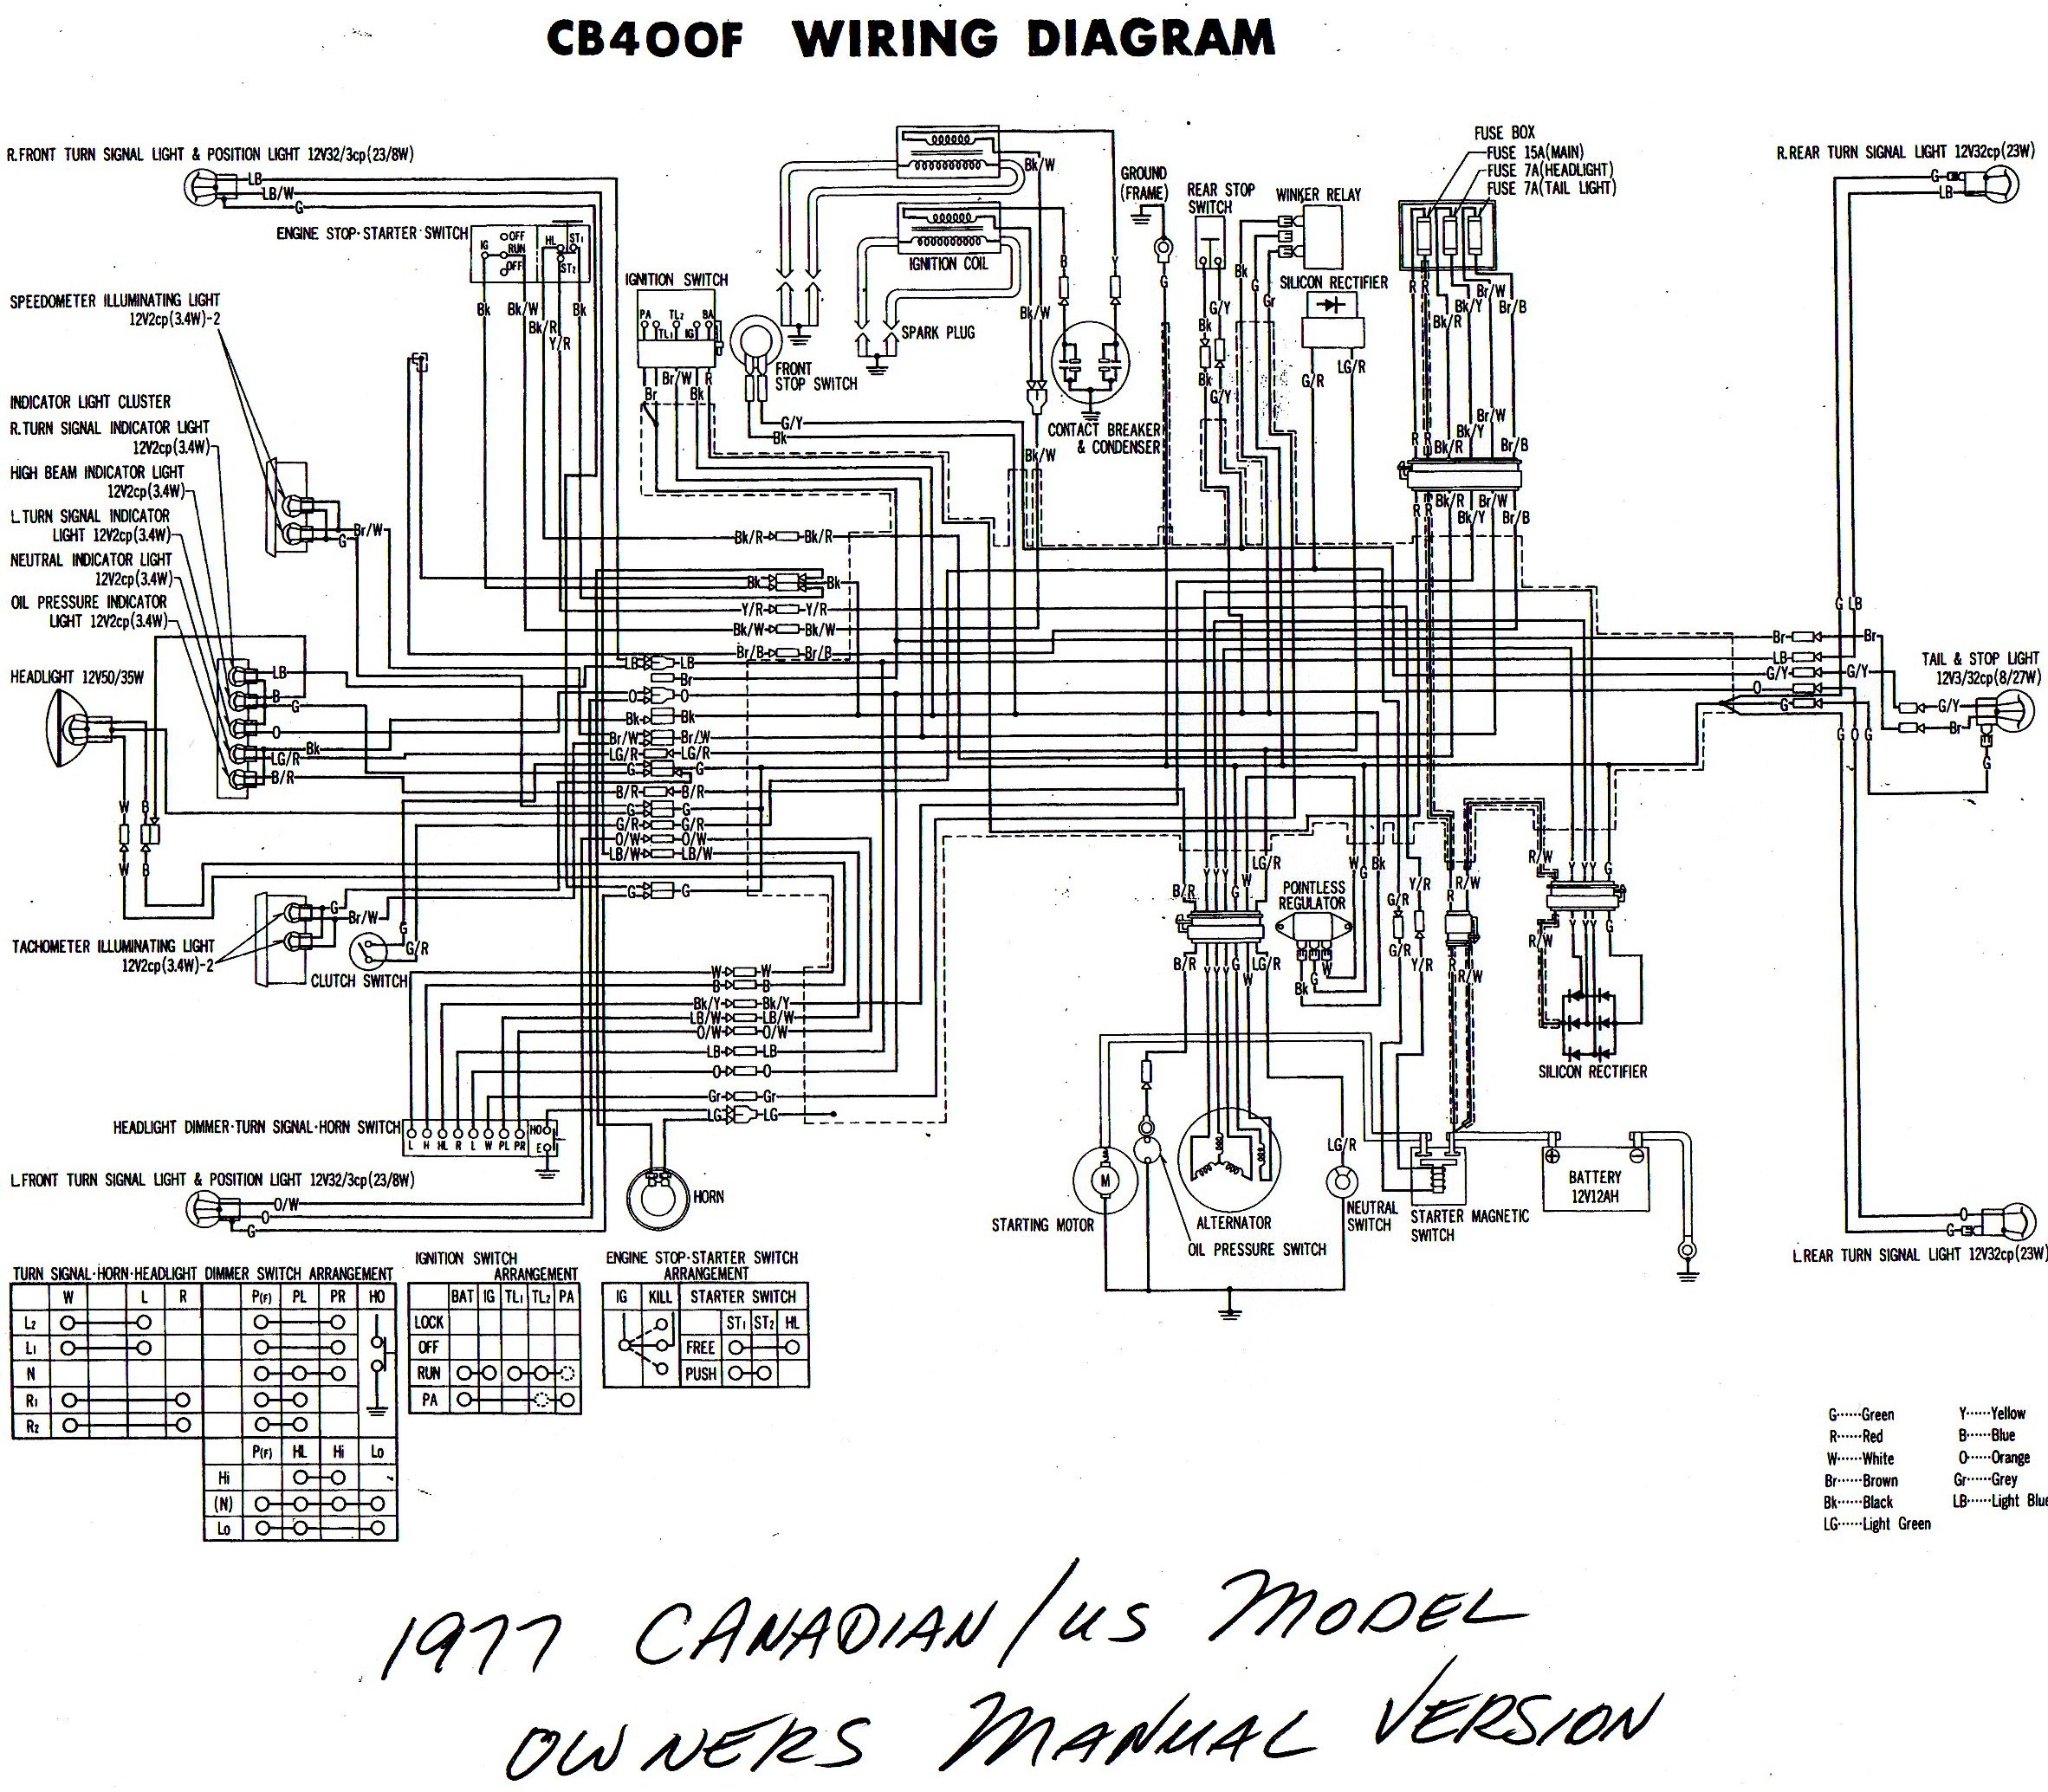 honda 400 wiring diagram wiring diagram show honda 400 wiring diagram data diagram schematic honda shadow 400 wiring diagram honda 400 4 wiring